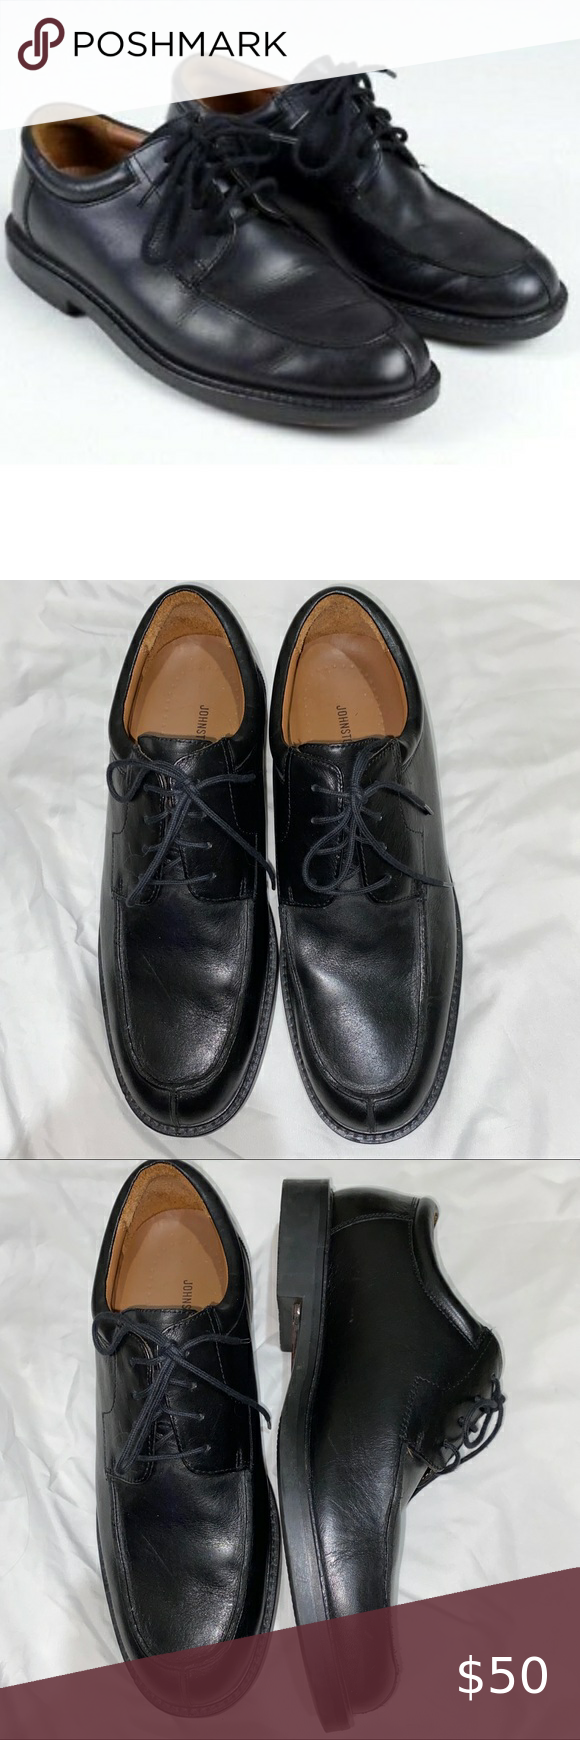 Johnston Murphy Black Leather Dress Lace Up Shoe Black Leather Dress Shoes Lace Up Shoes Business Casual Shoes [ 1740 x 580 Pixel ]